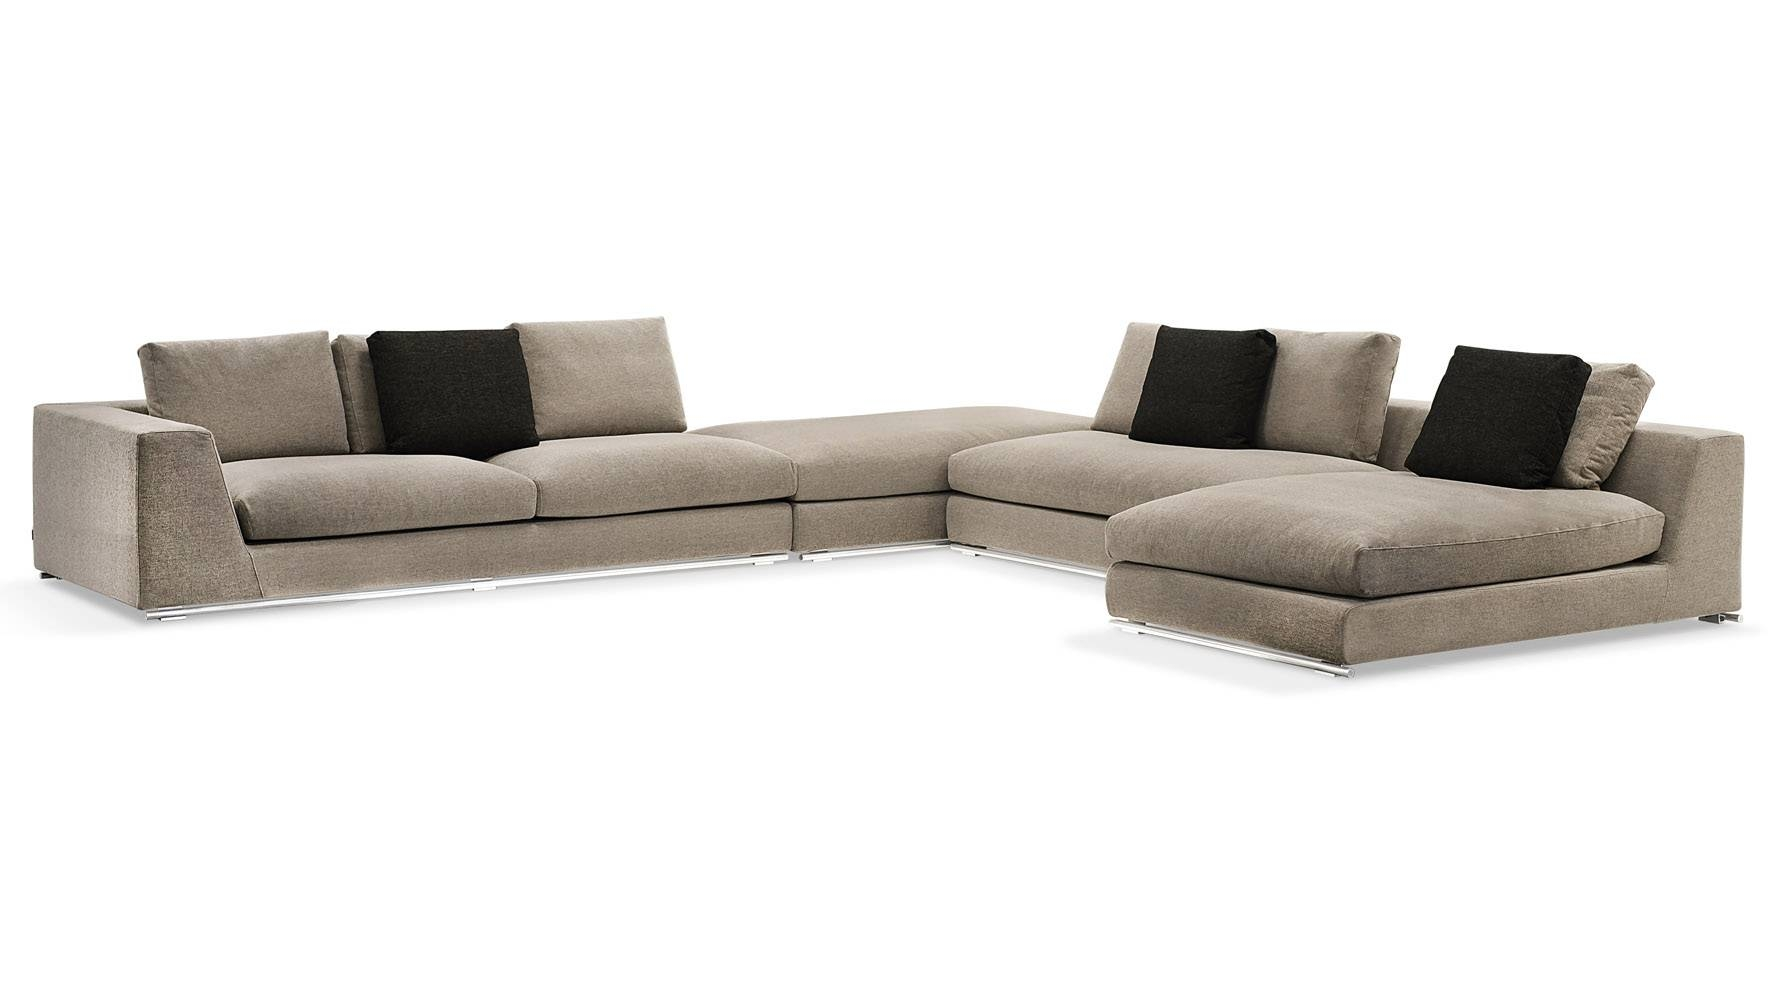 Comodo Sectional Sofa With Ottoman - Grey | Zuri Furniture with regard to Armless Sectional Sofa (Image 10 of 30)